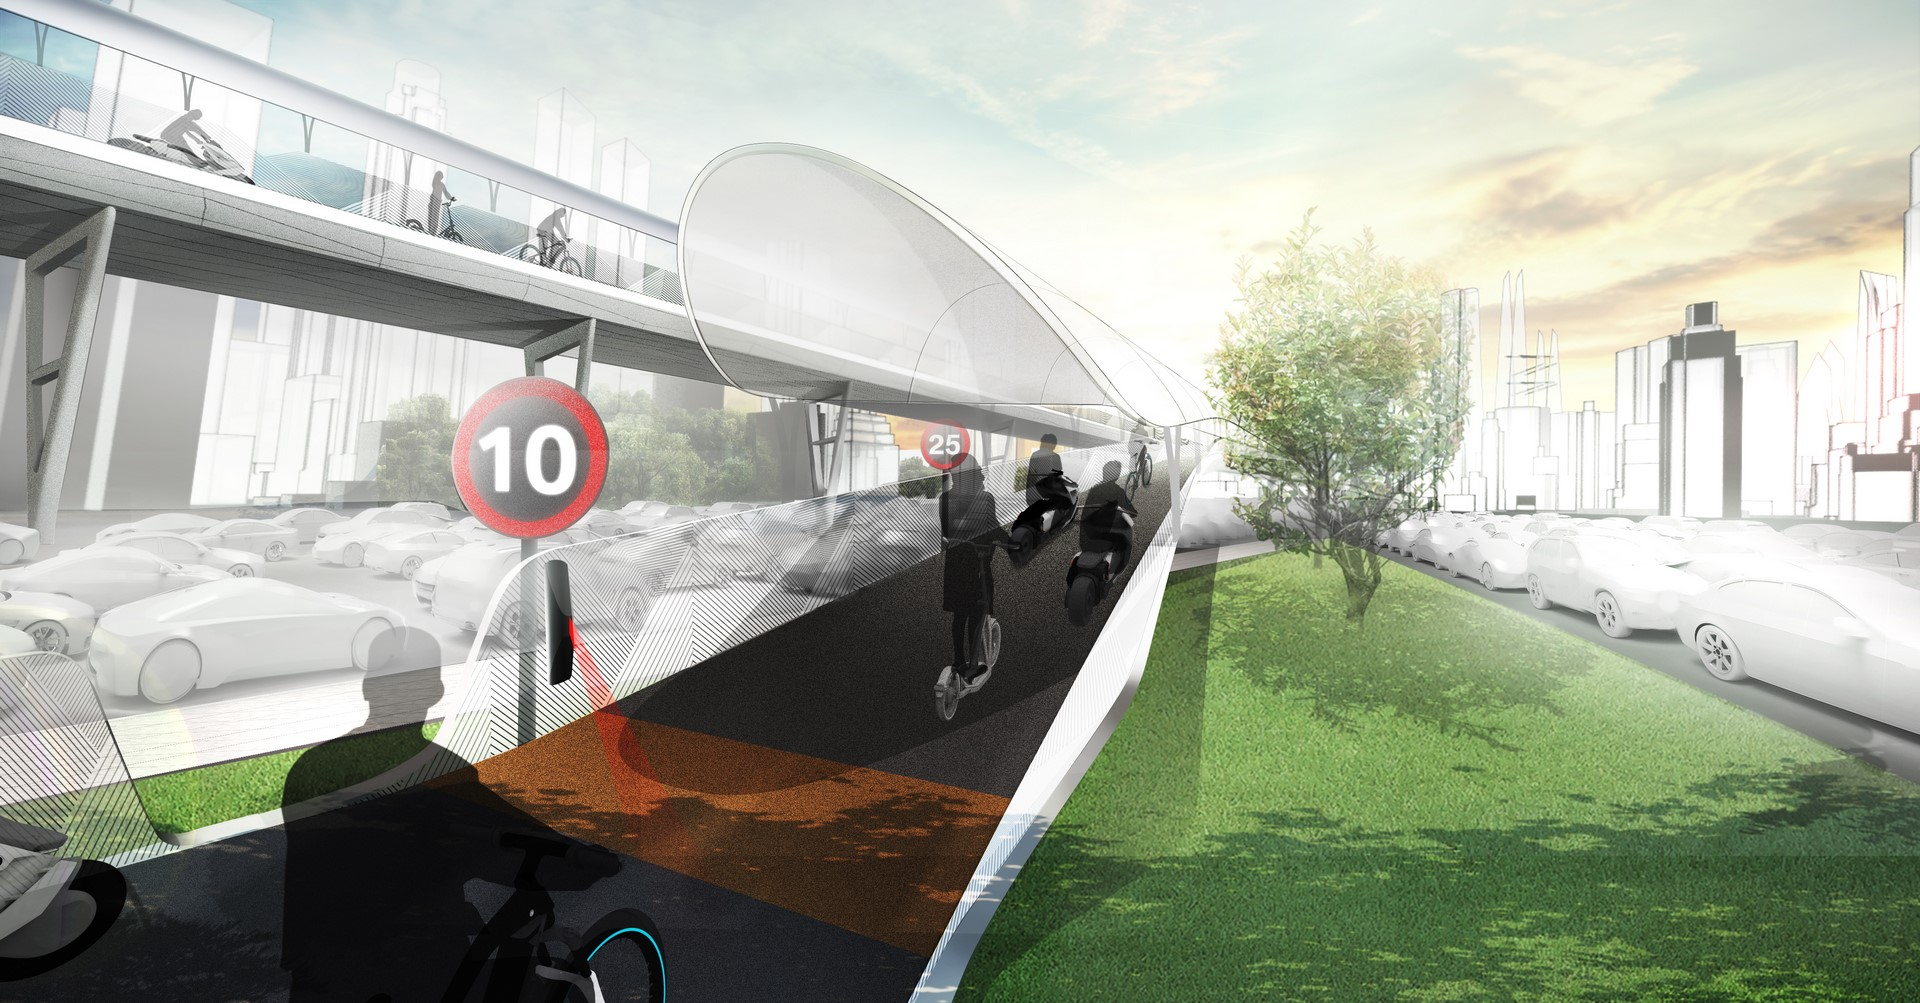 BMW Vision E3 Elevated Road Concept (3)